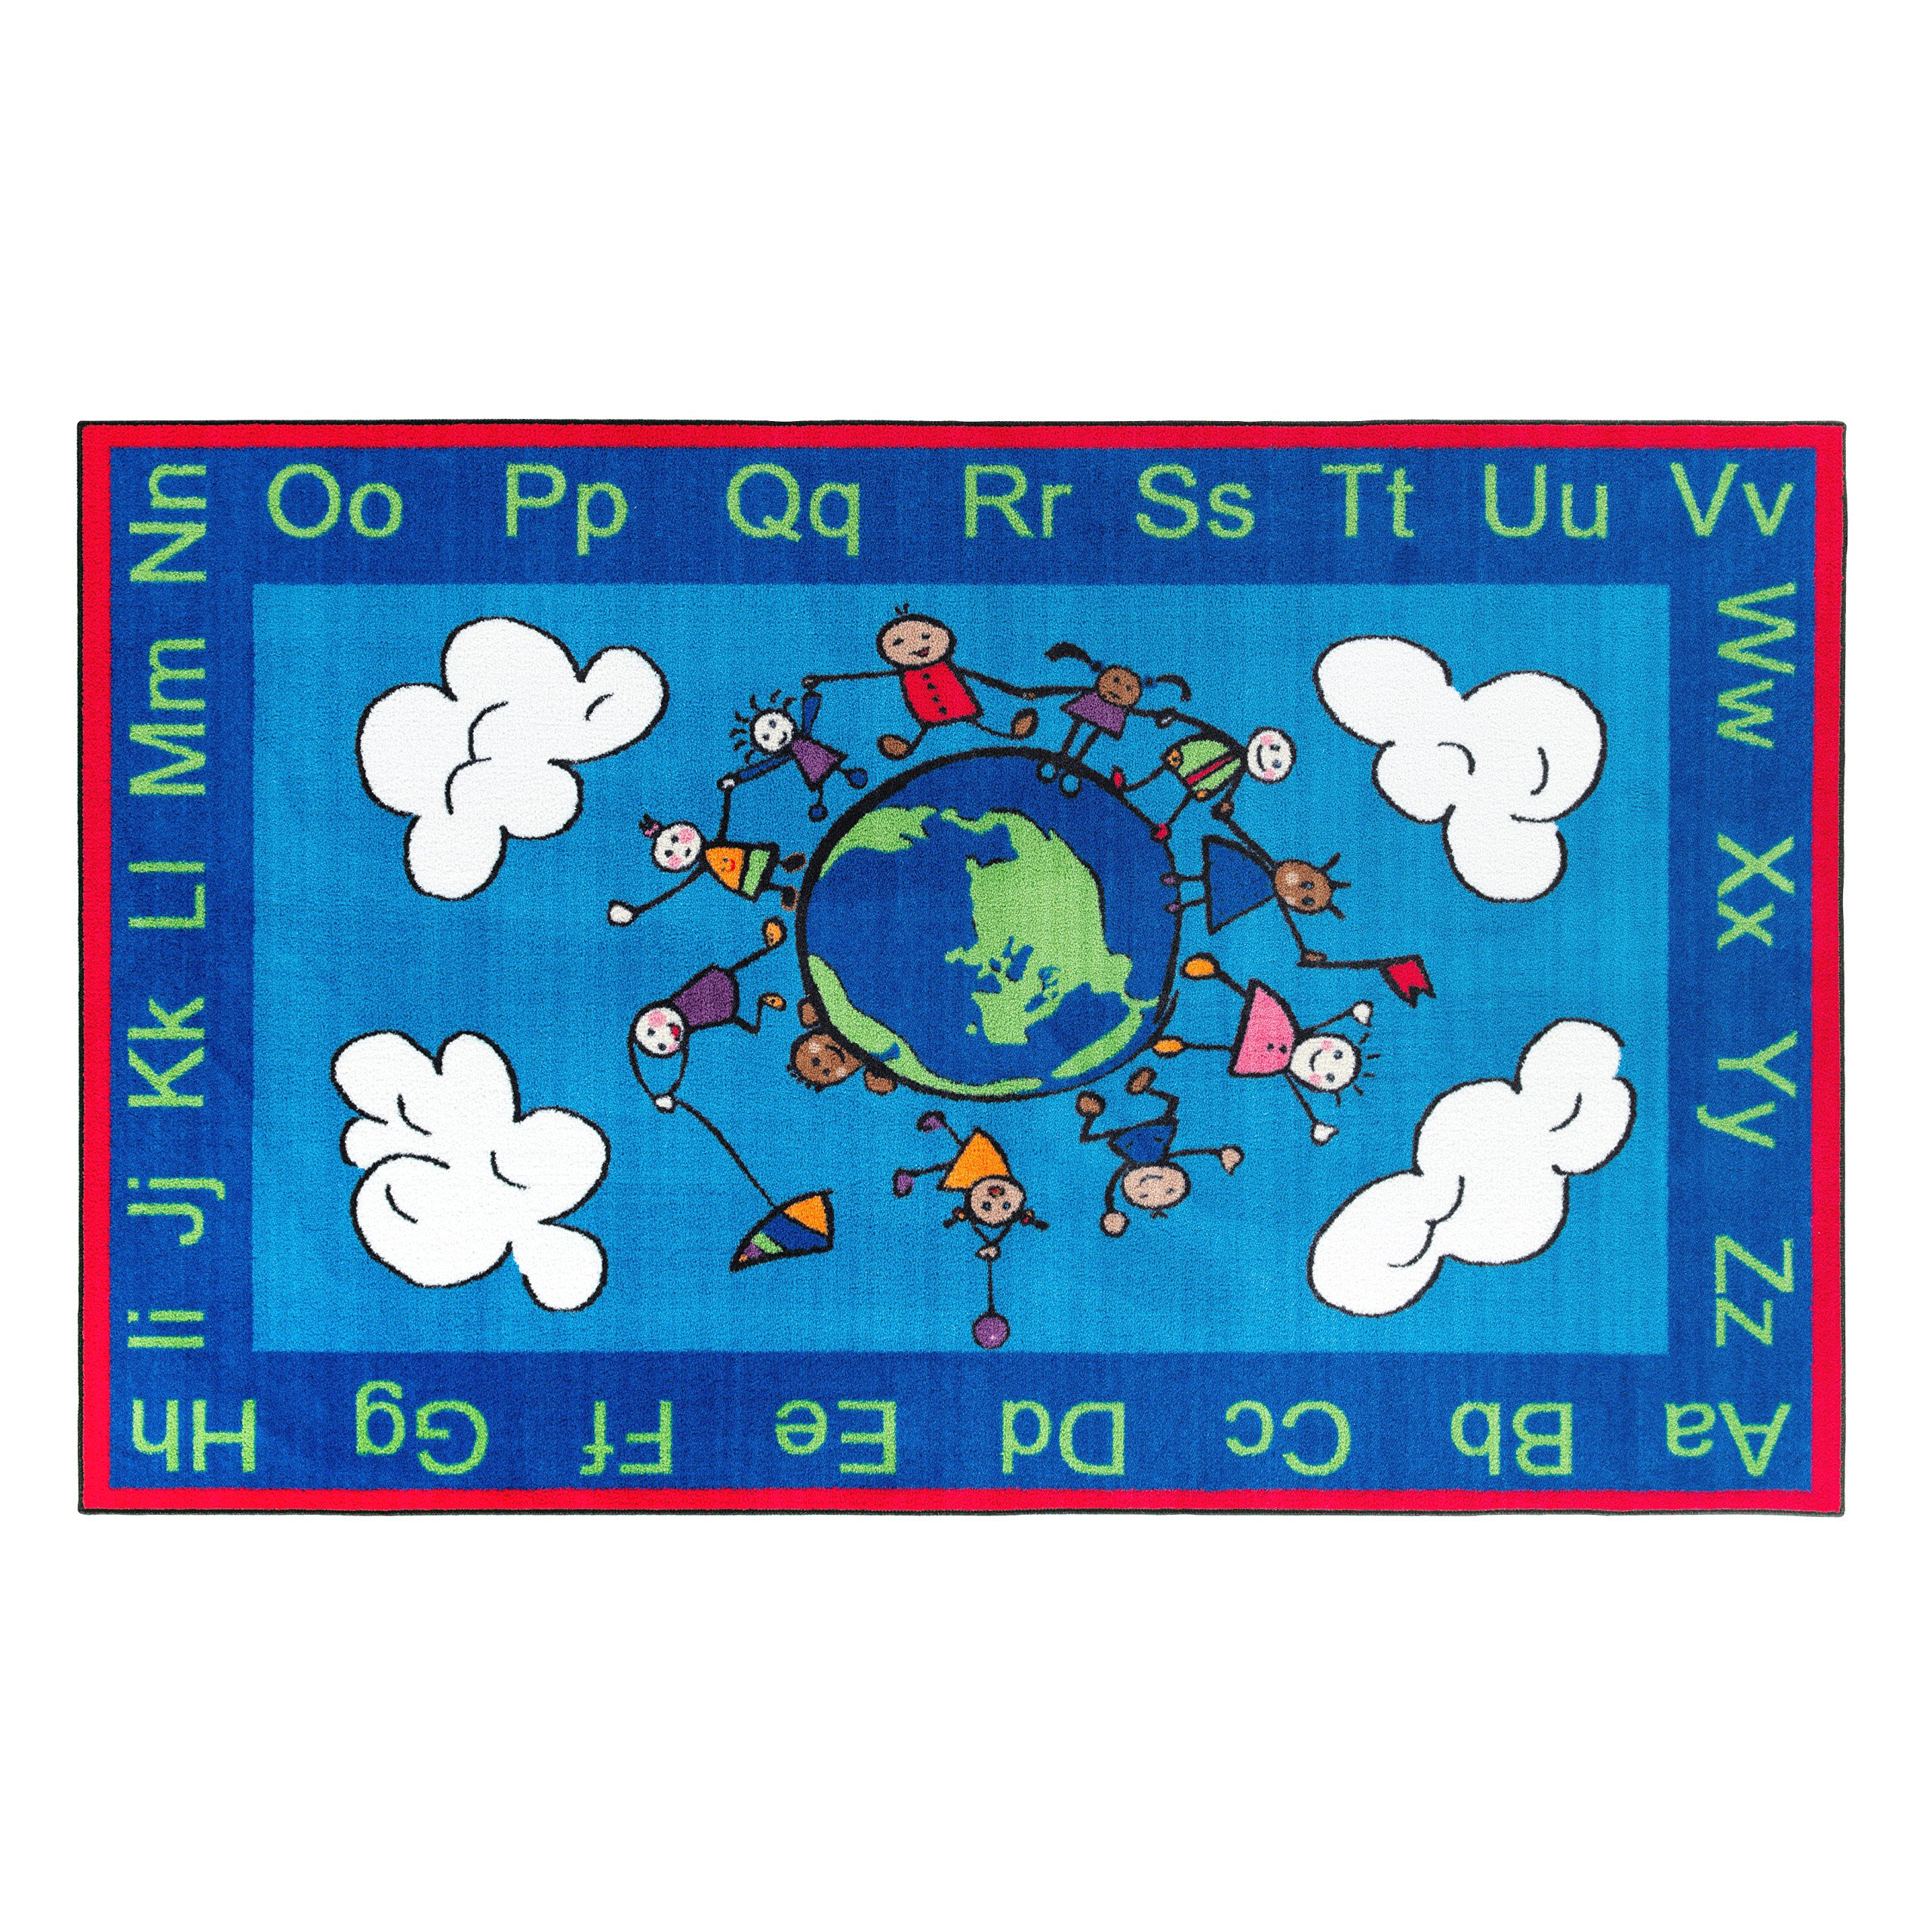 Flagship Carpets CE189-28W Happy World Rug, Promotes Acceptance with Cheerful Friends of Diverse Backgrounds, 5' x 8', 60'' Length, 96'' Width, Blue/Multi-Color by Flagship Carpets